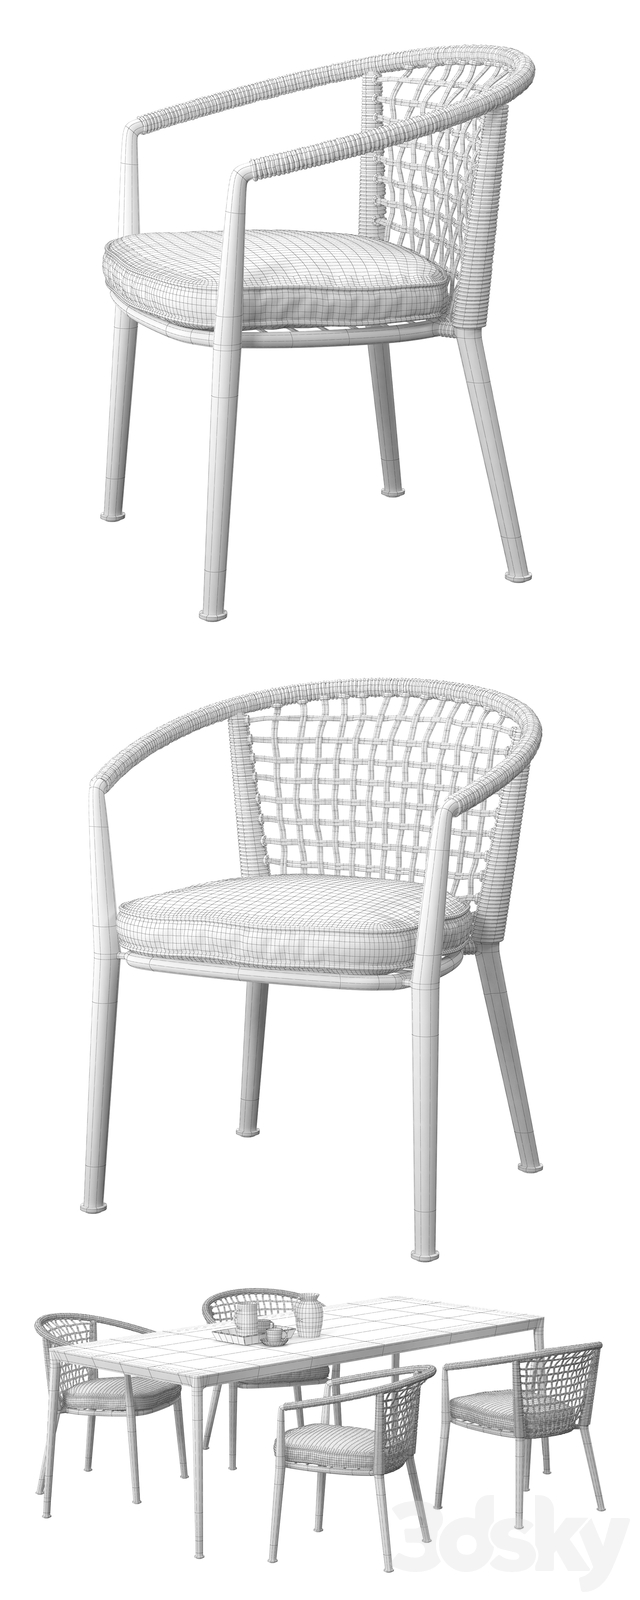 B & B Italia Outdoor ERICA '19 chairs set